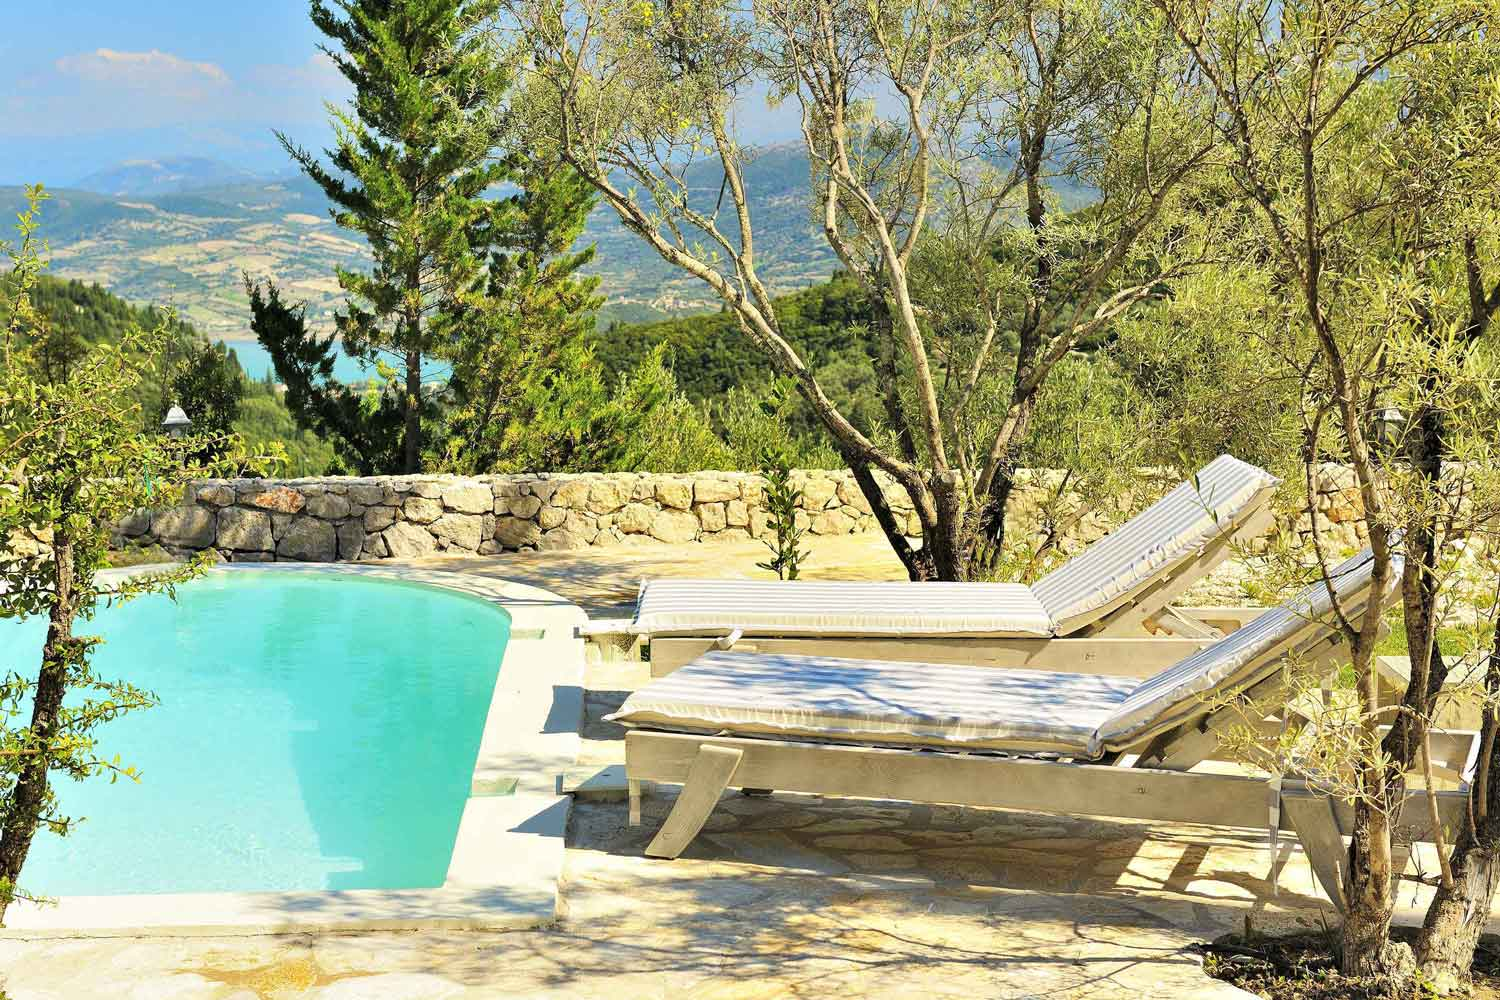 private pool villa for couples, sunbed landscape view